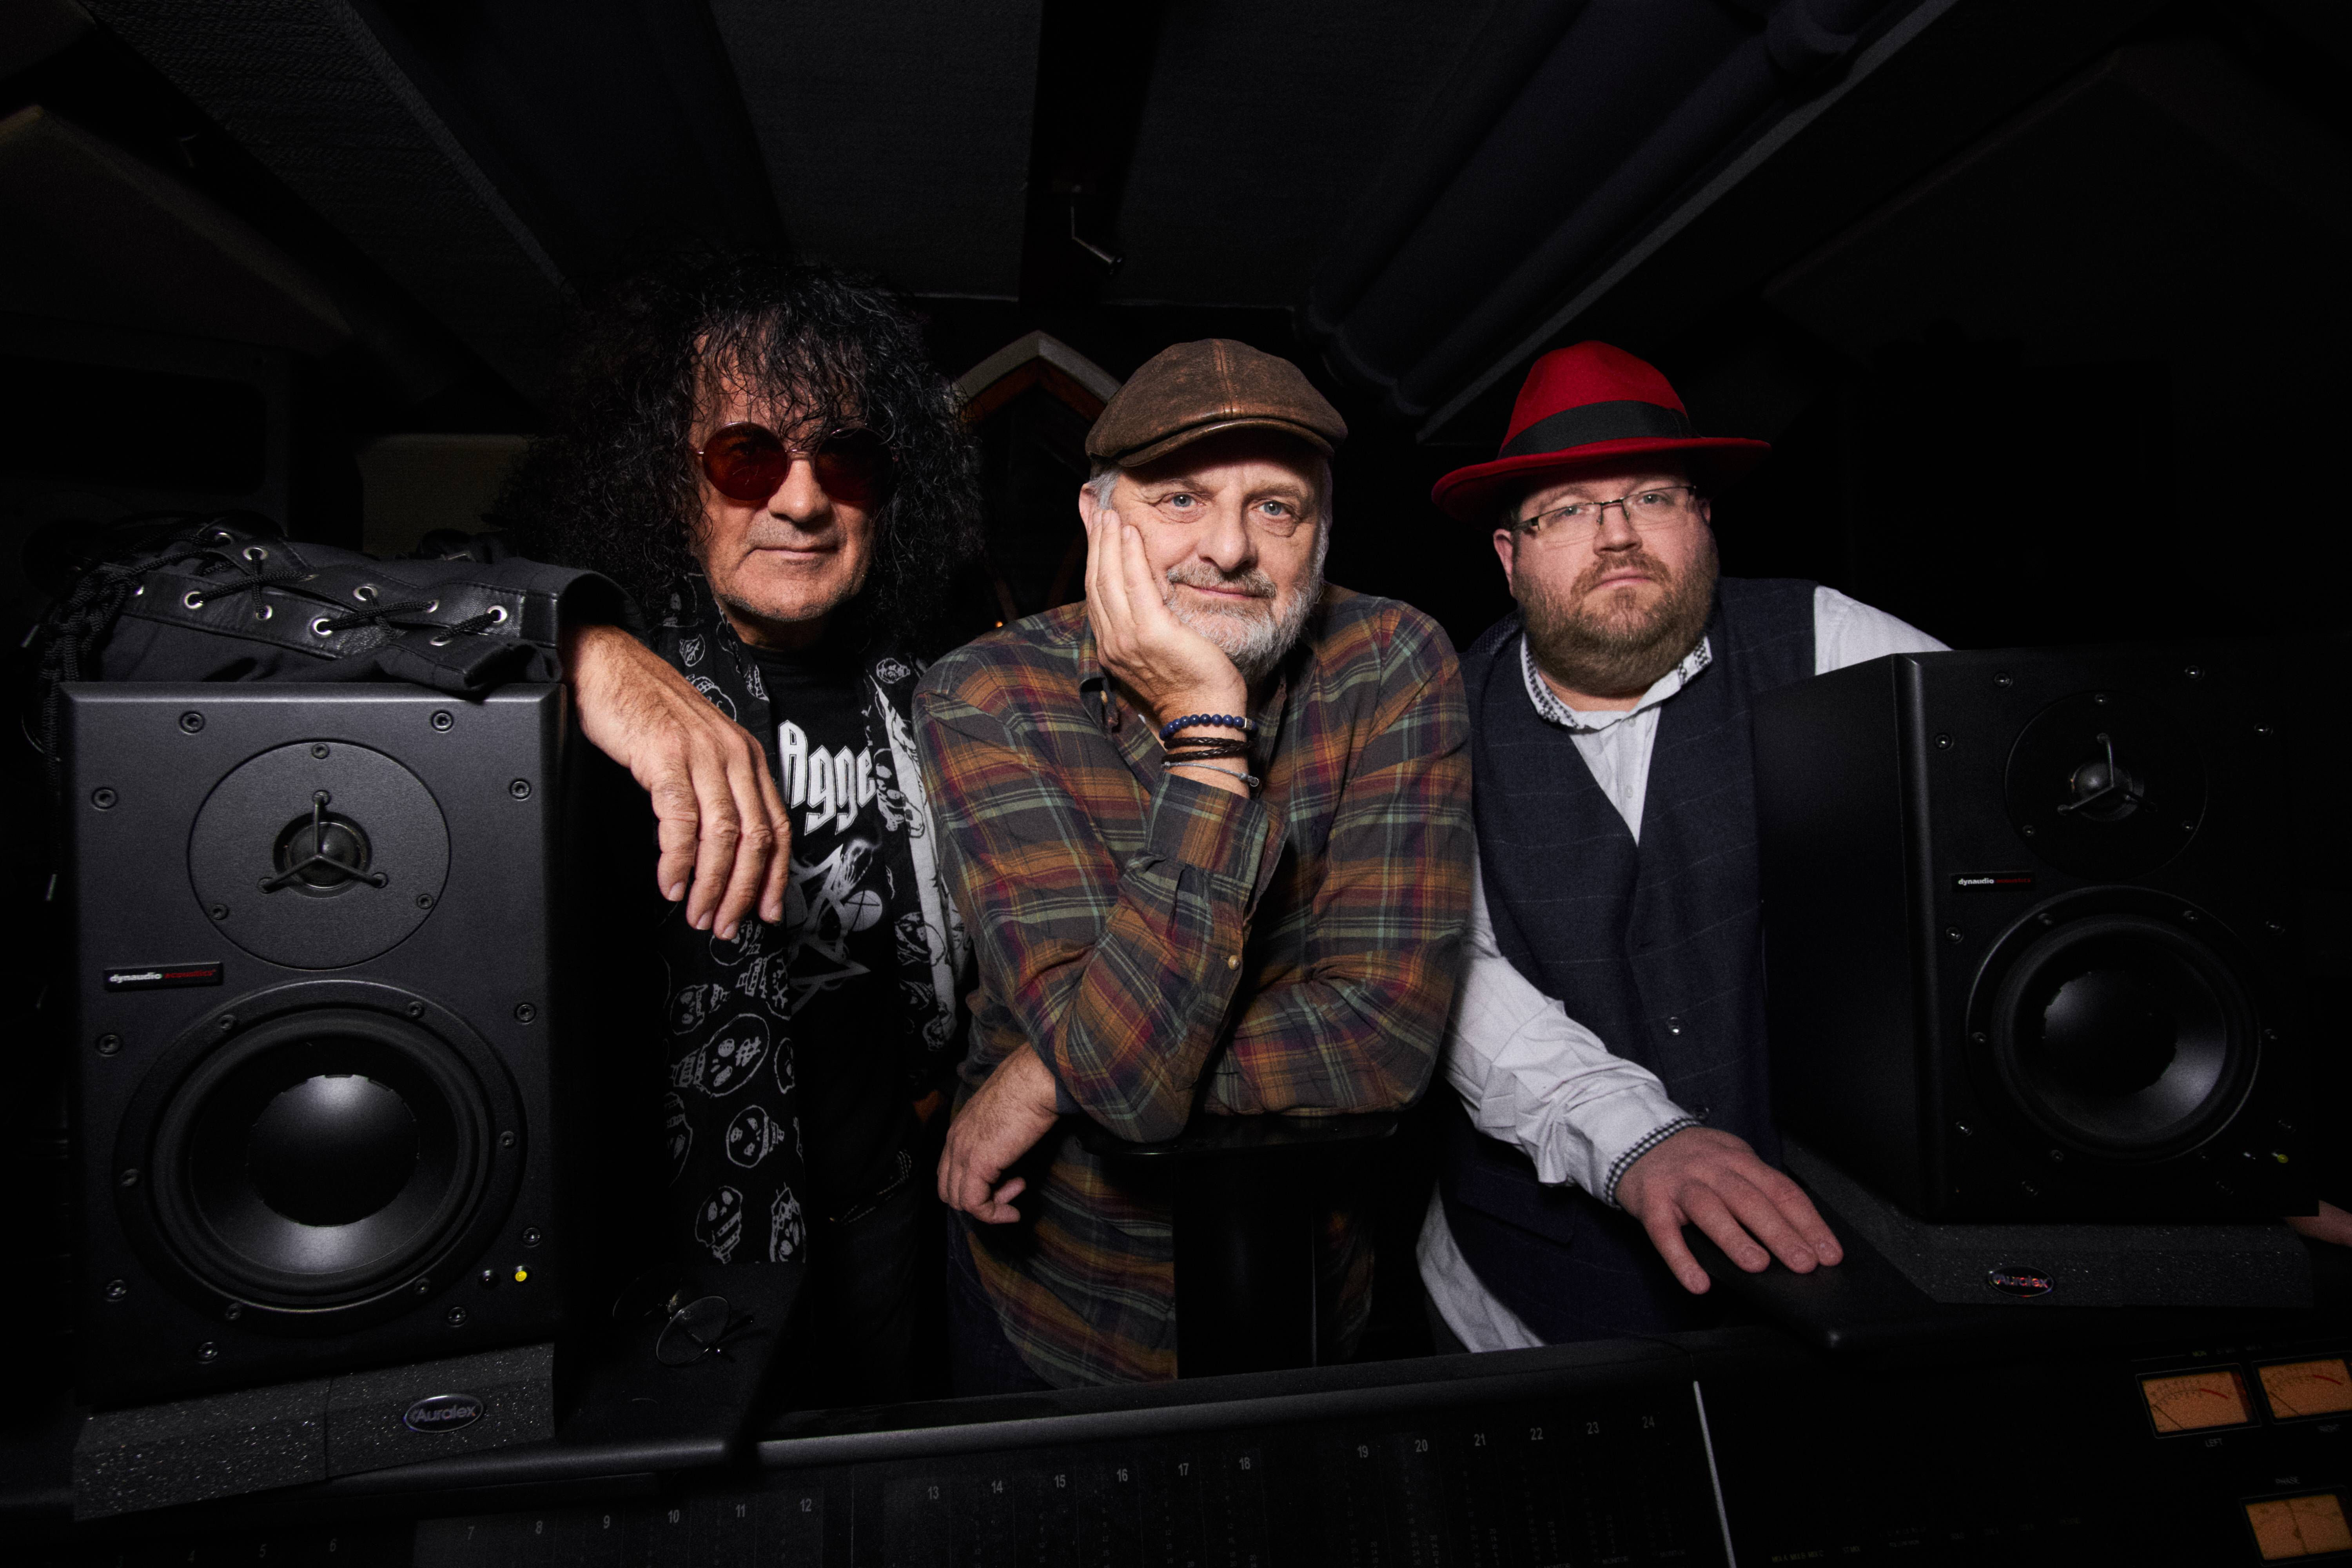 AMERICAN WILDERNESS ODYSSEY STEVE BONHAM AND THE LONG ROAD | PERFORMING AT SALFORD ARTS THEATRE